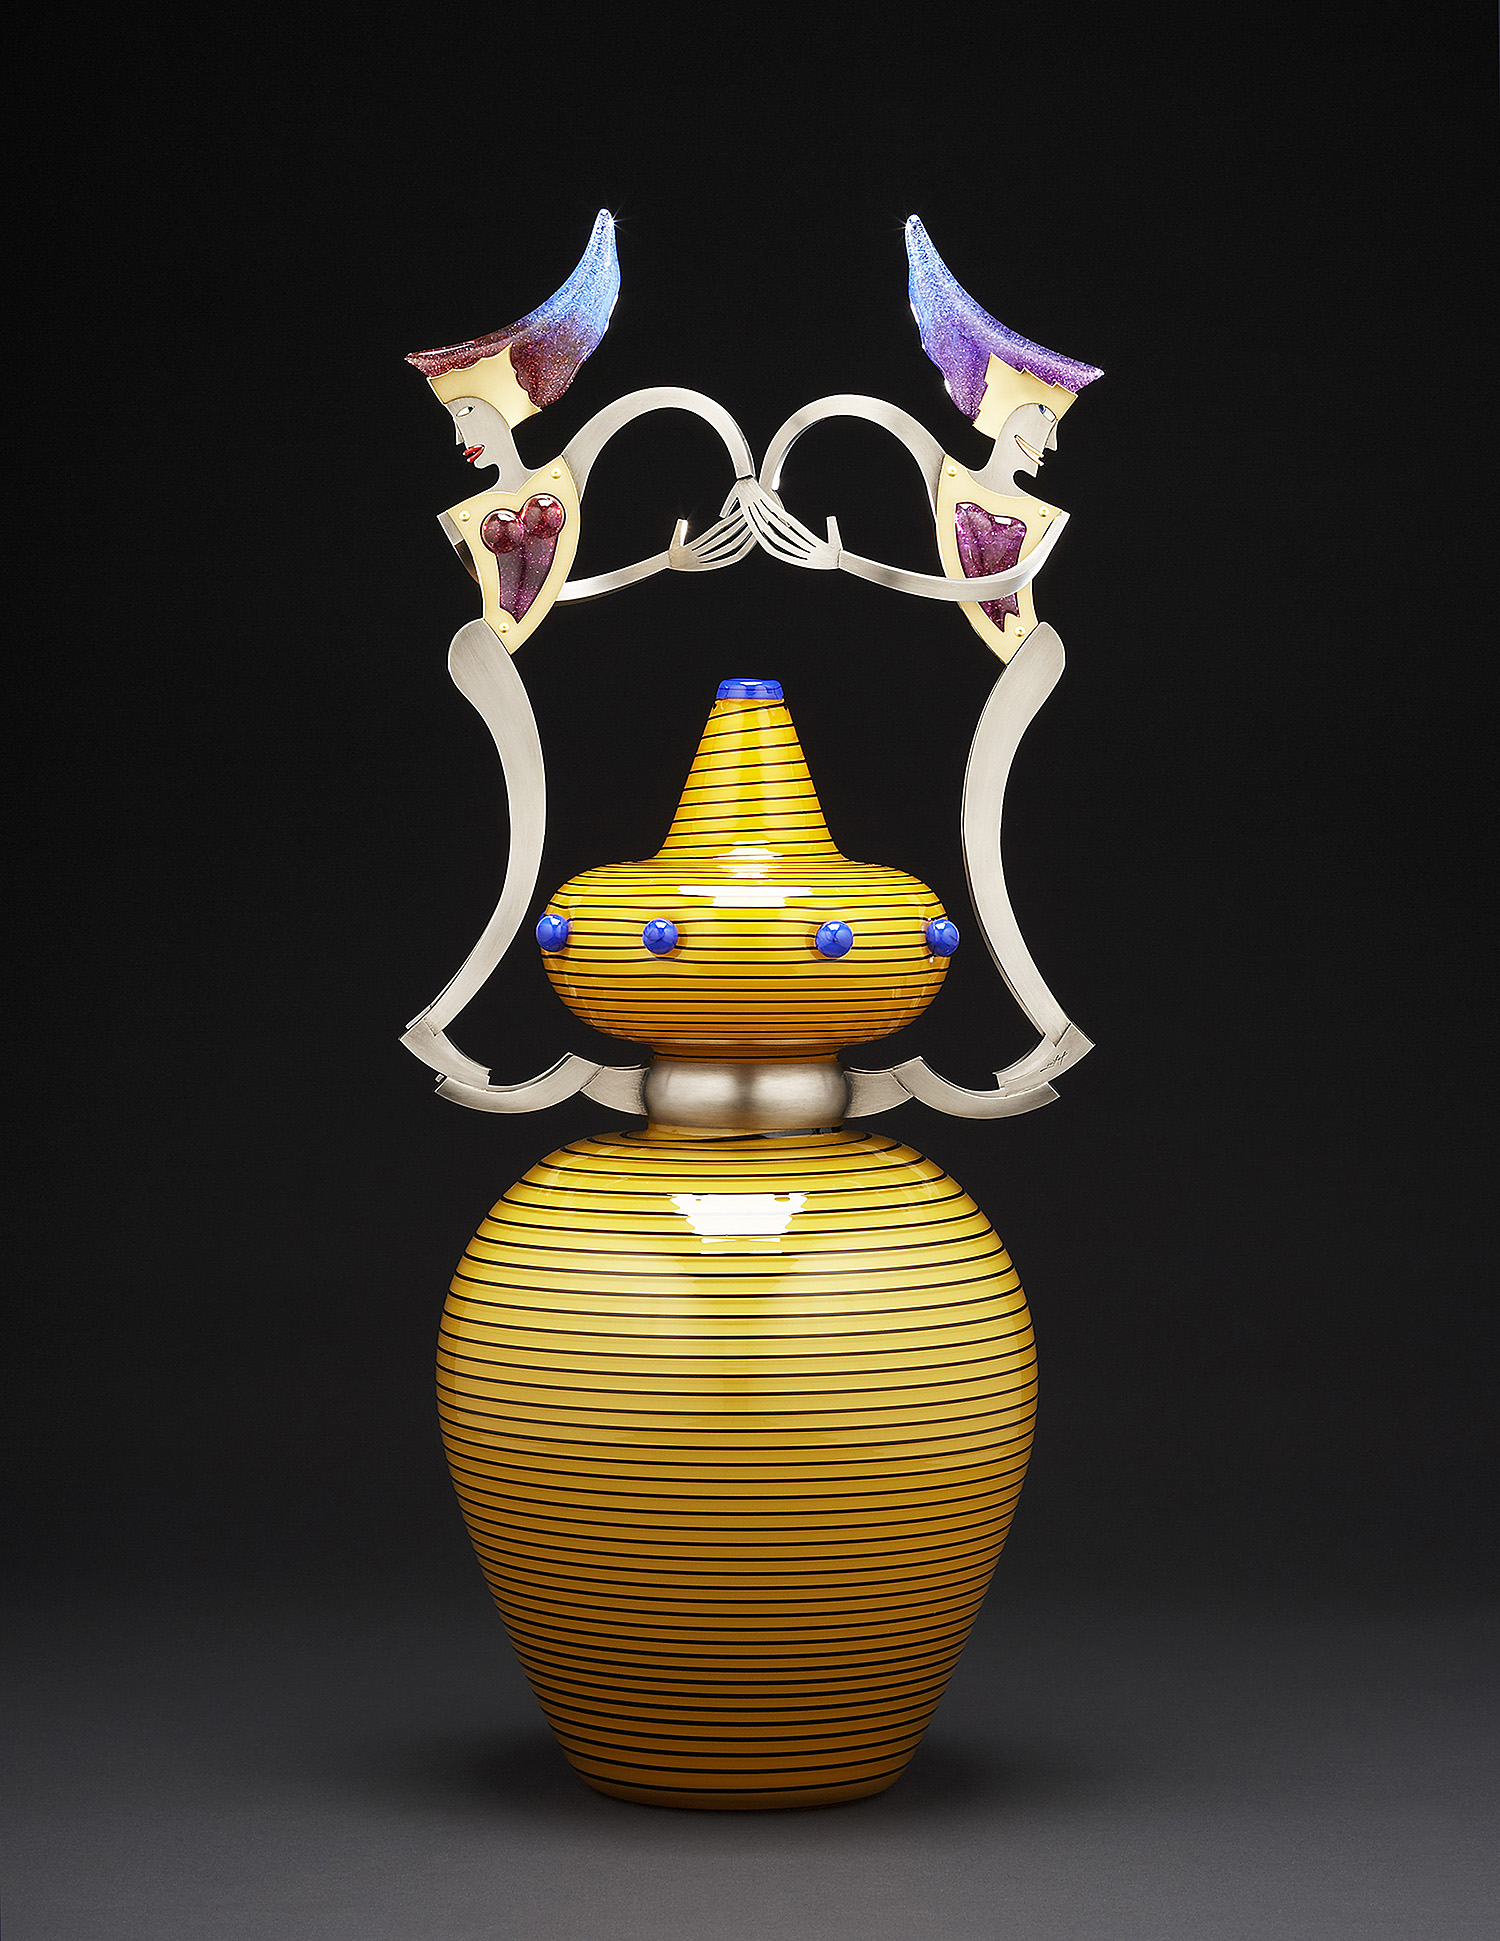 Sensation   2006. Blown glass, nickel and gold-plated bronze, pate de verre, Vitrolite. 24½ x 11 x 9½""